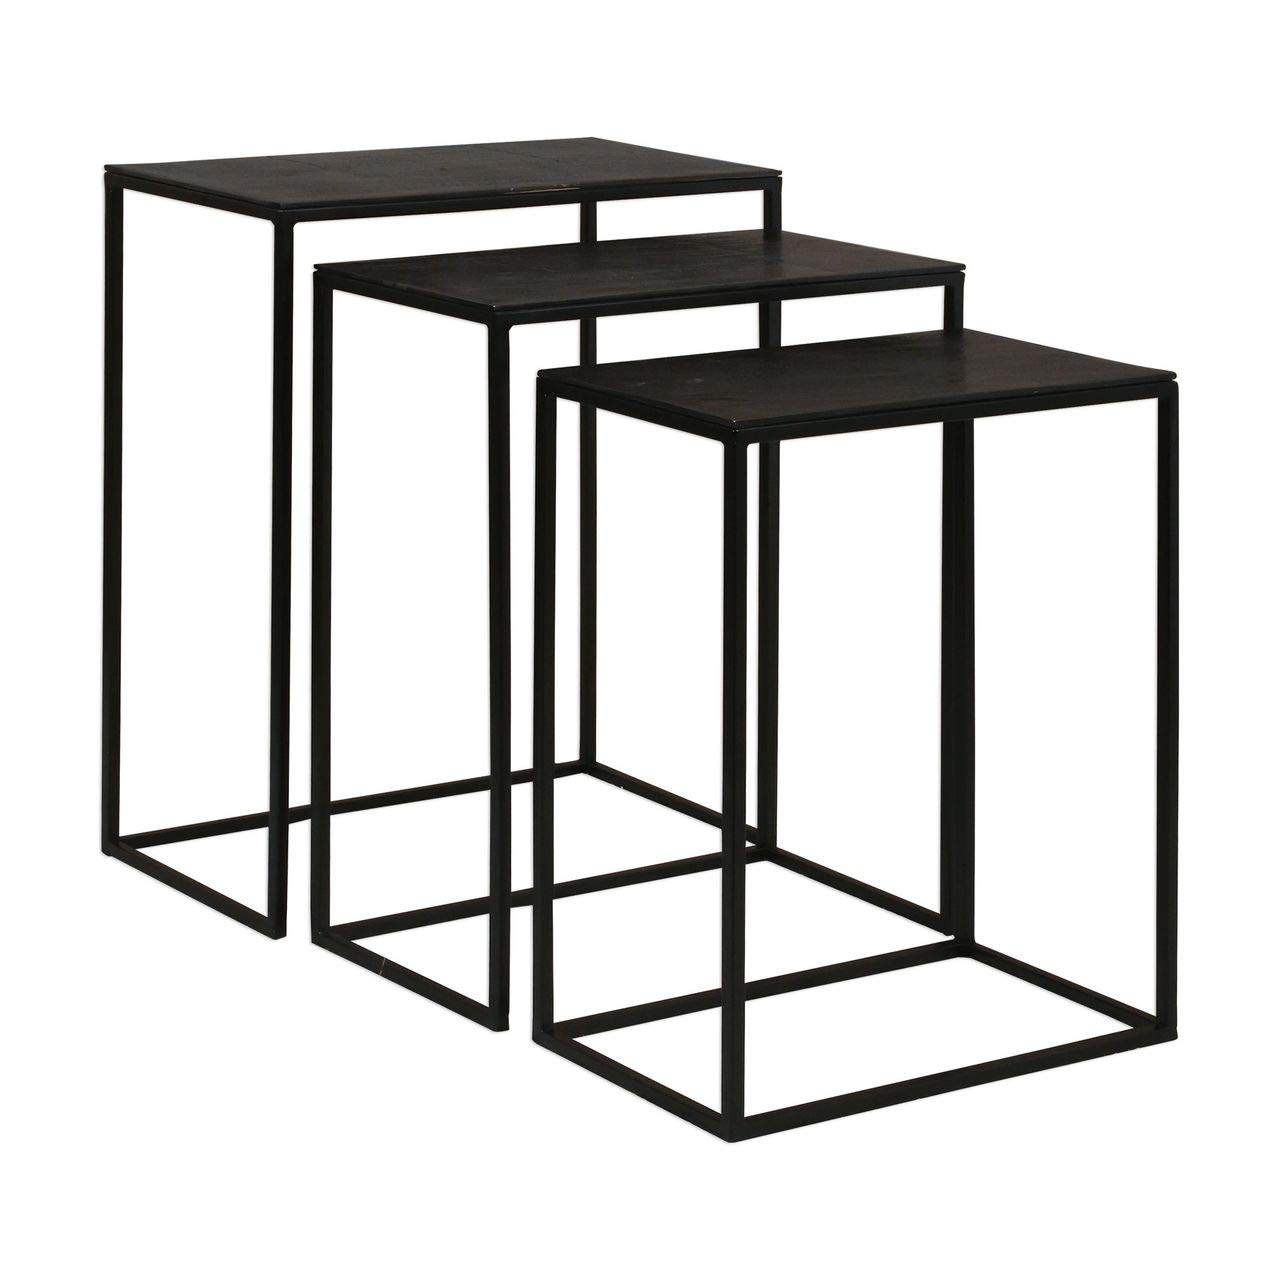 Uttermost Coreene 3 Piece Nesting End Table Set in Aged Black by Uttermost